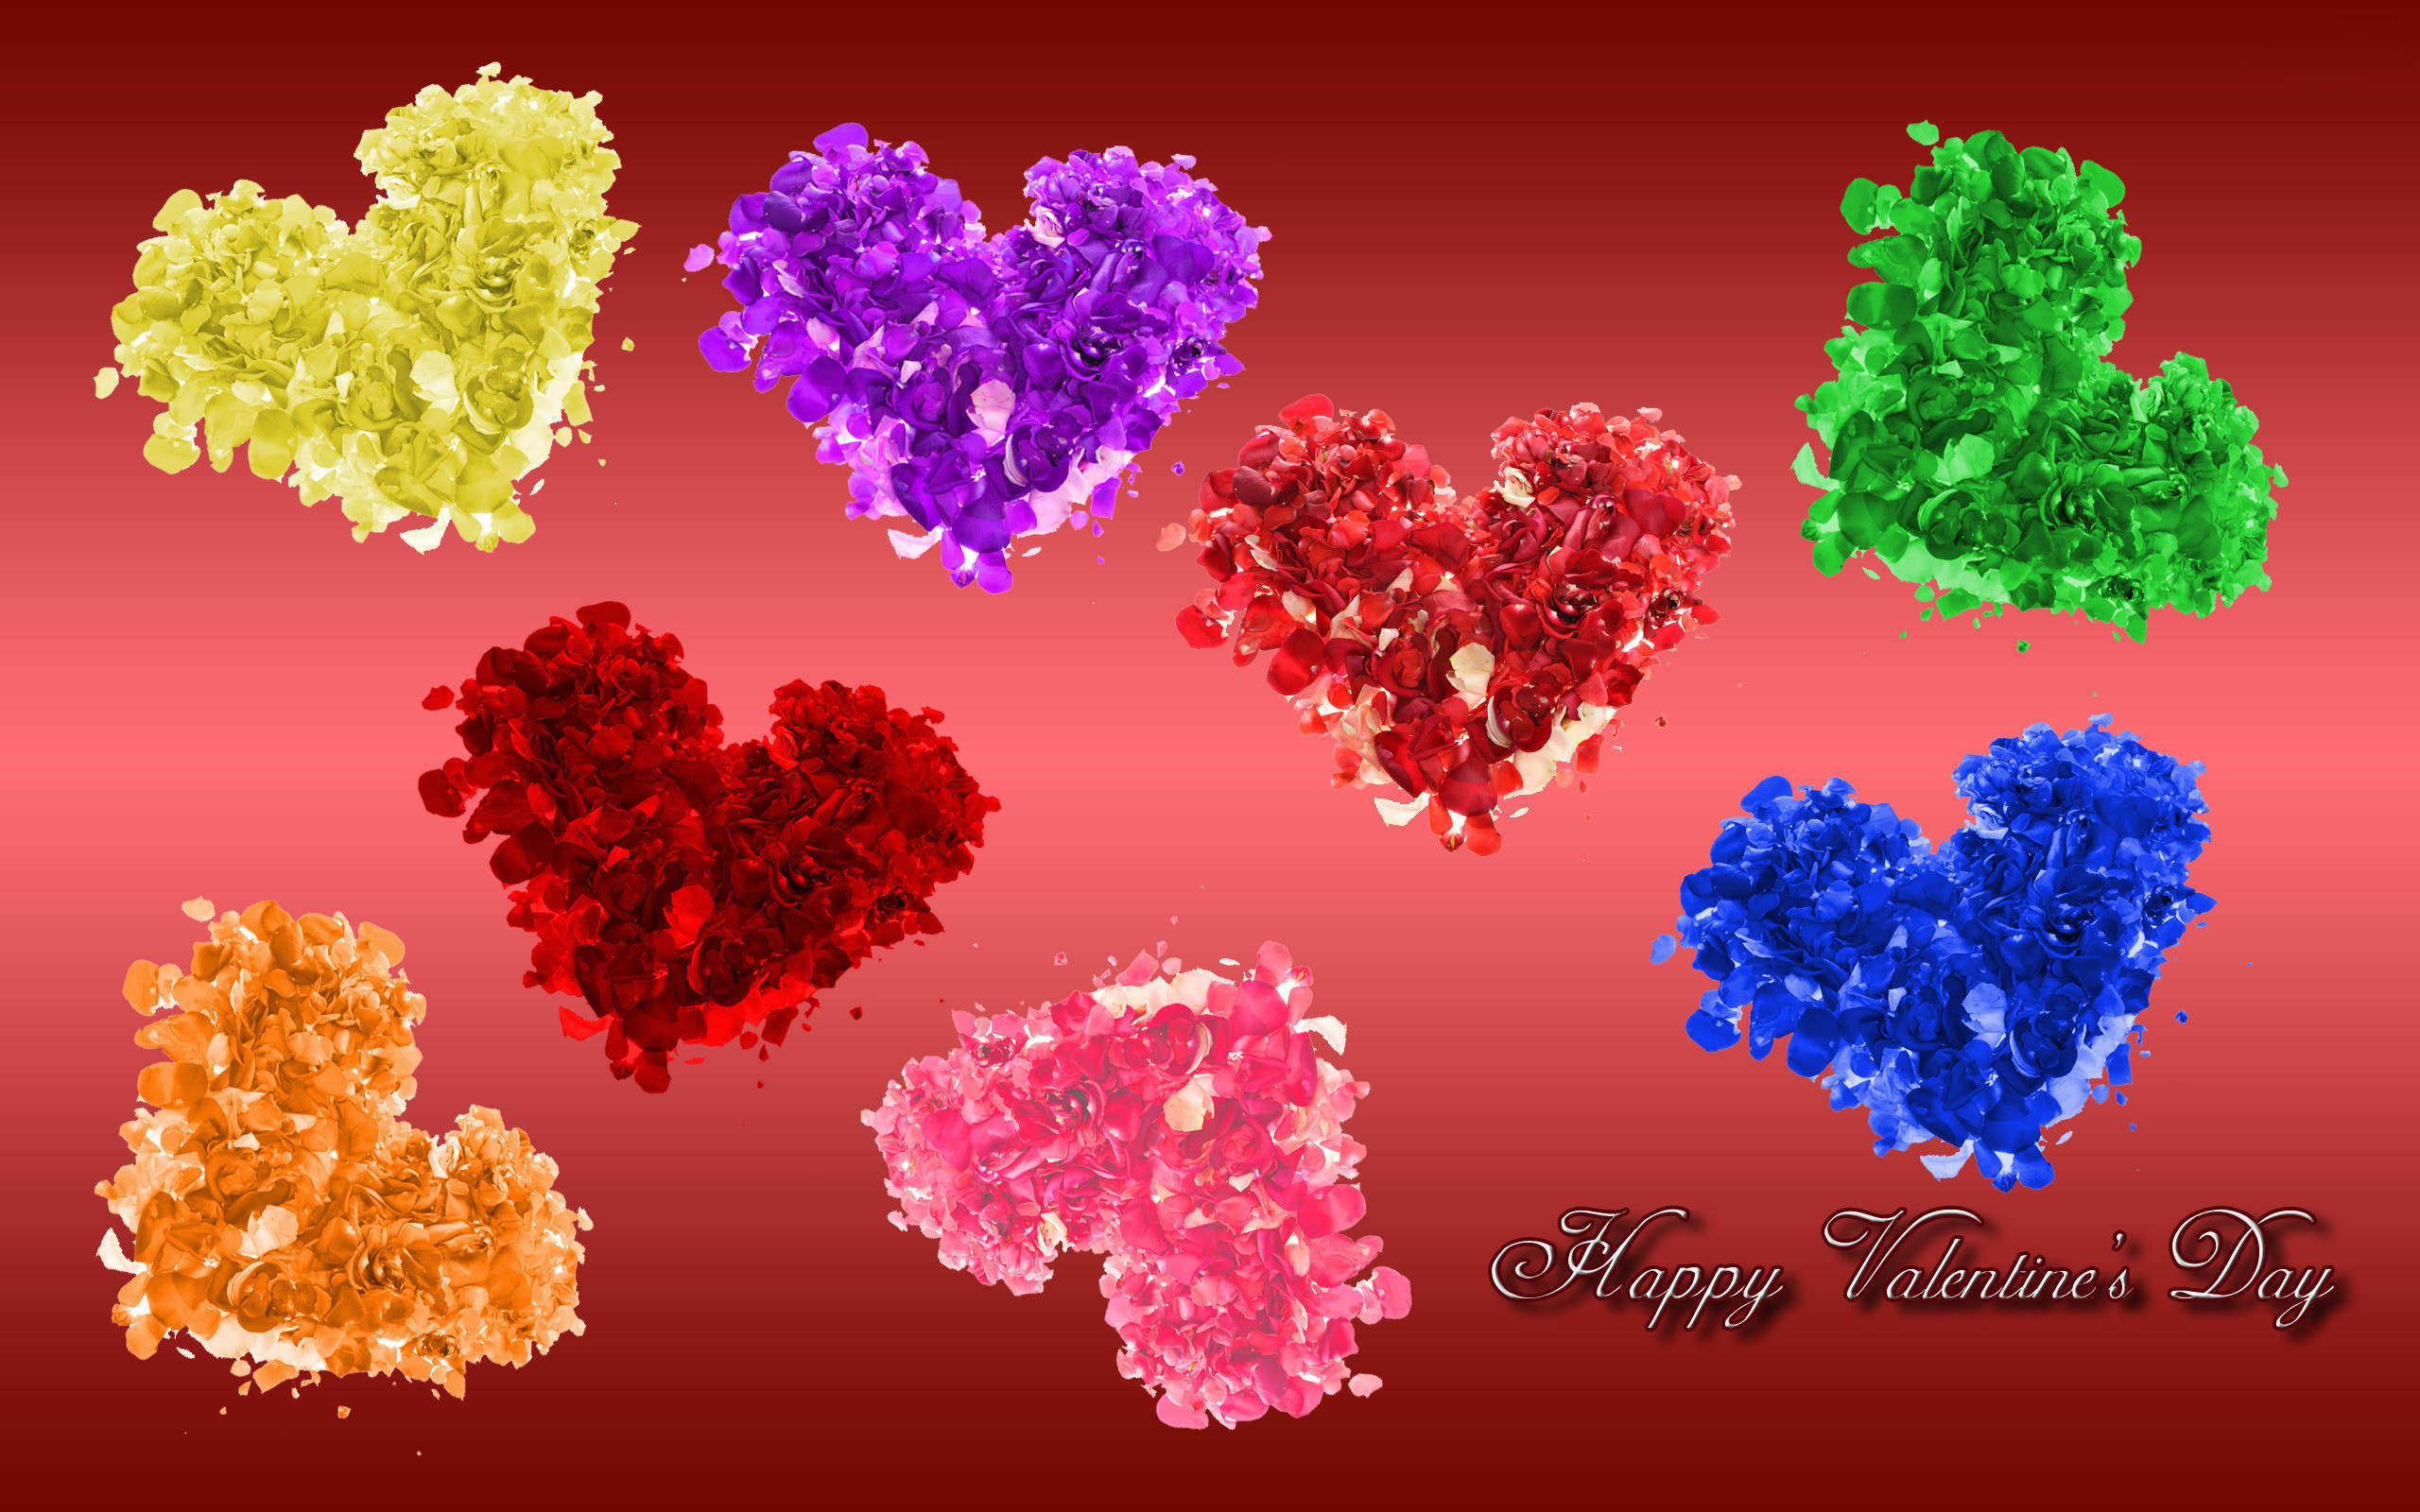 Valentines Day Colorful Wallpaper.